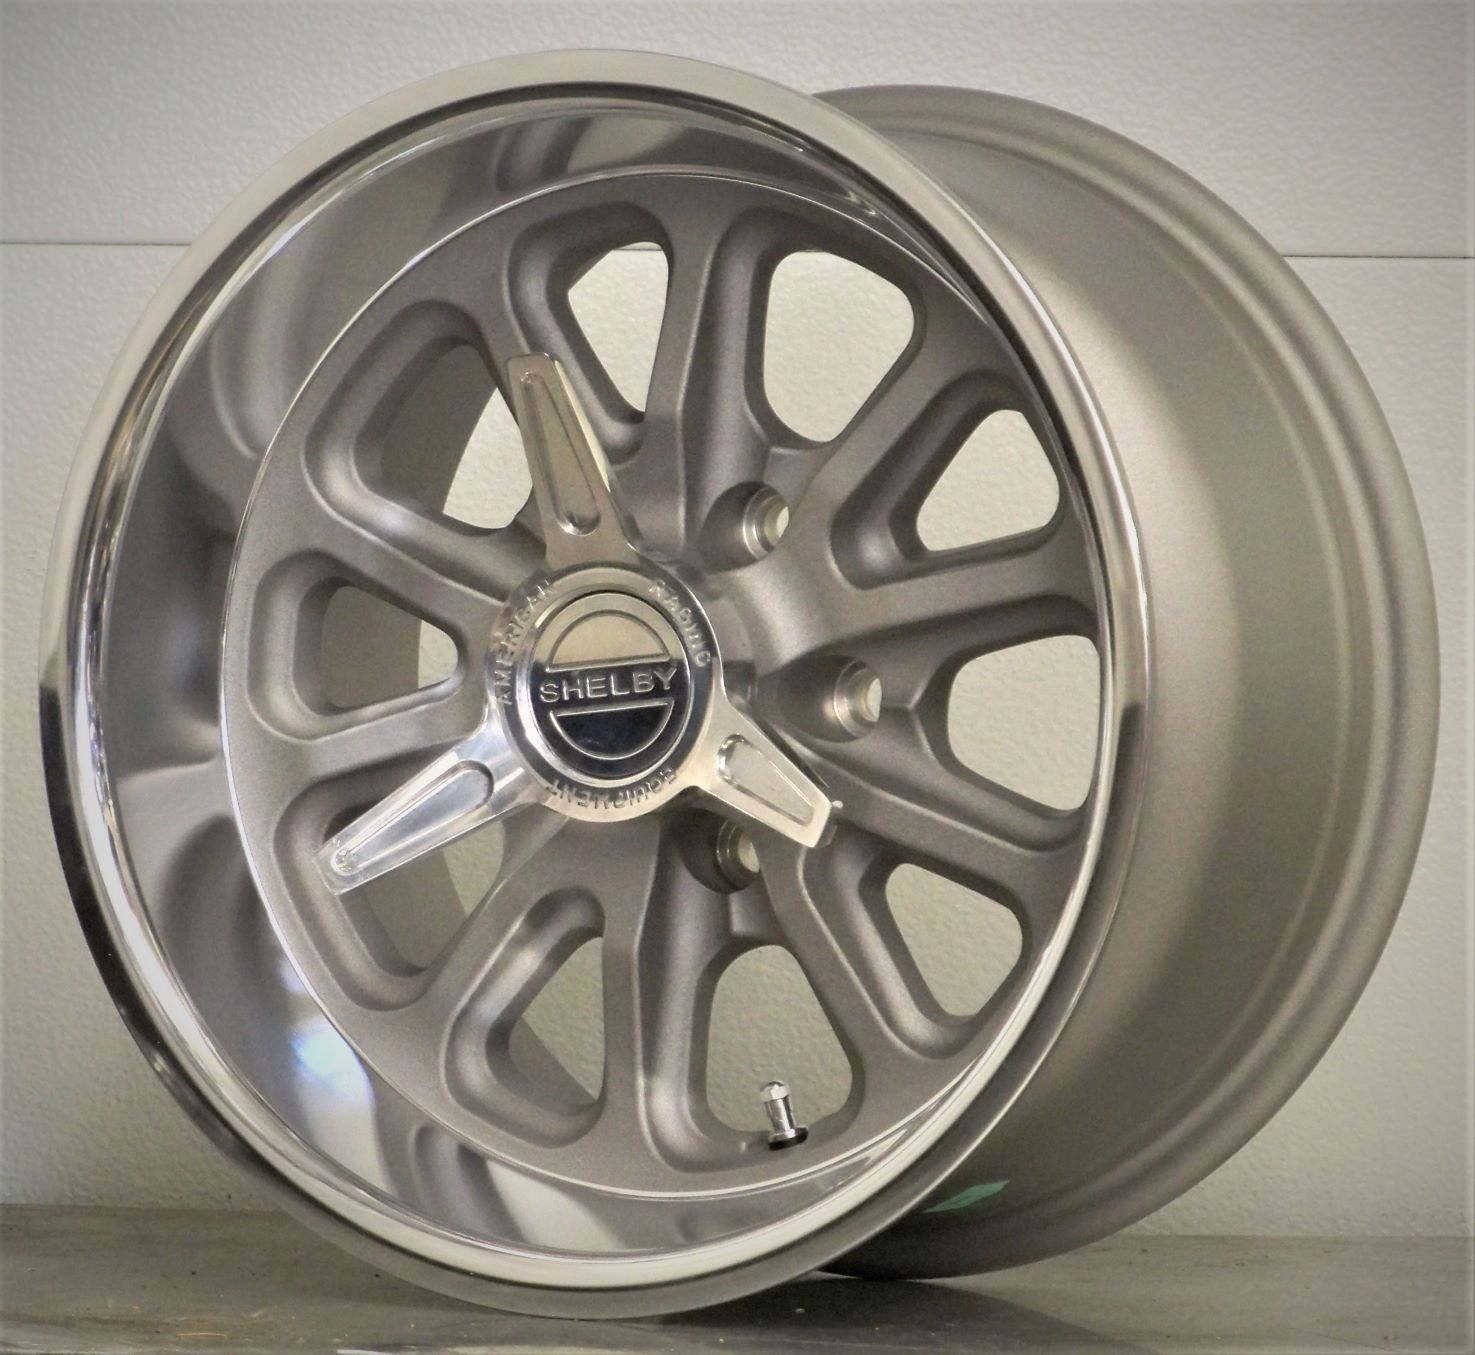 15s set of 4 RSS US Mags Shelby spinners silver gray 65-73